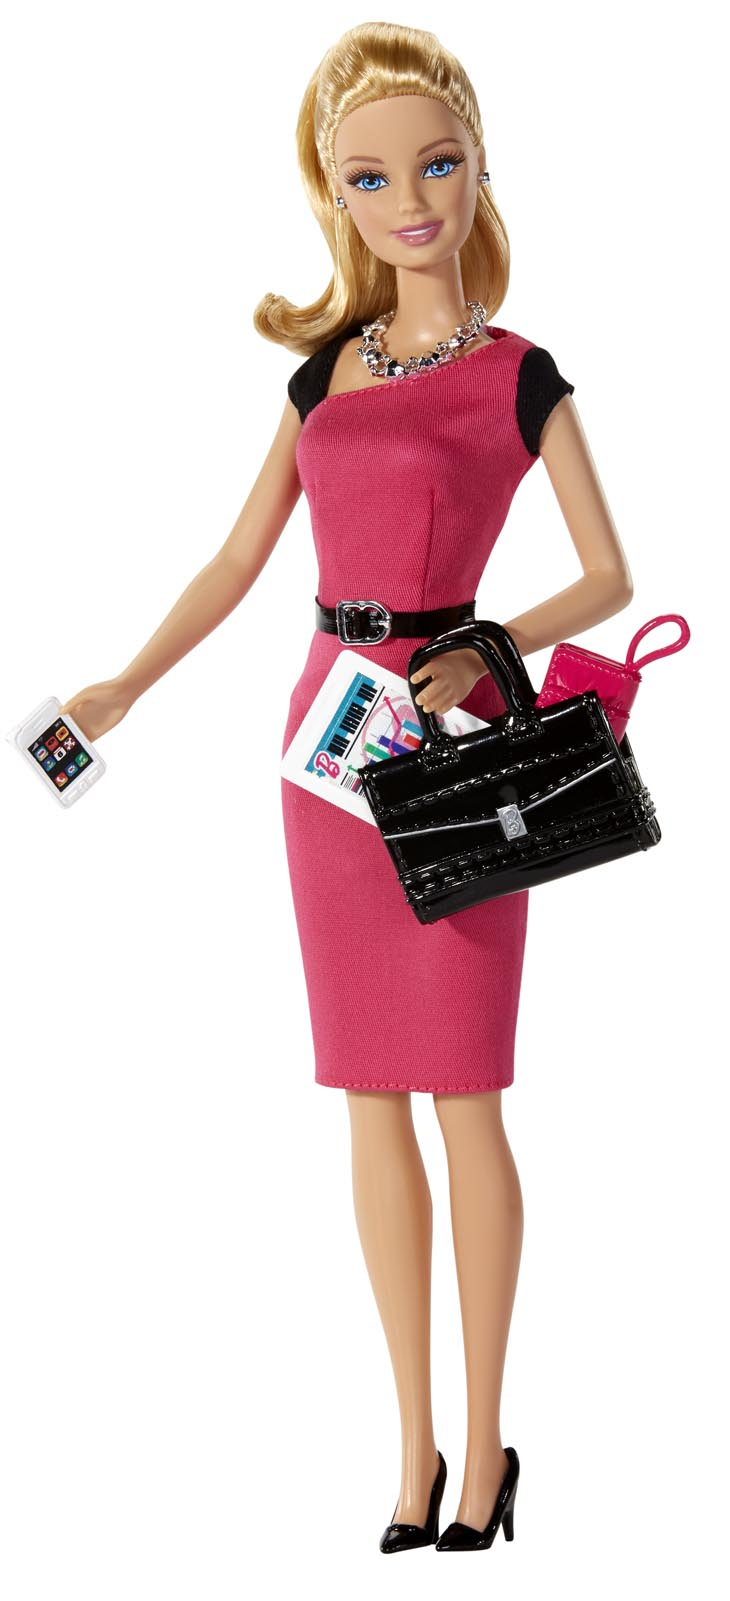 Mattel's 2014 Career of the Year doll, Entrepreneur Barbie, released June 18 on Amazon.